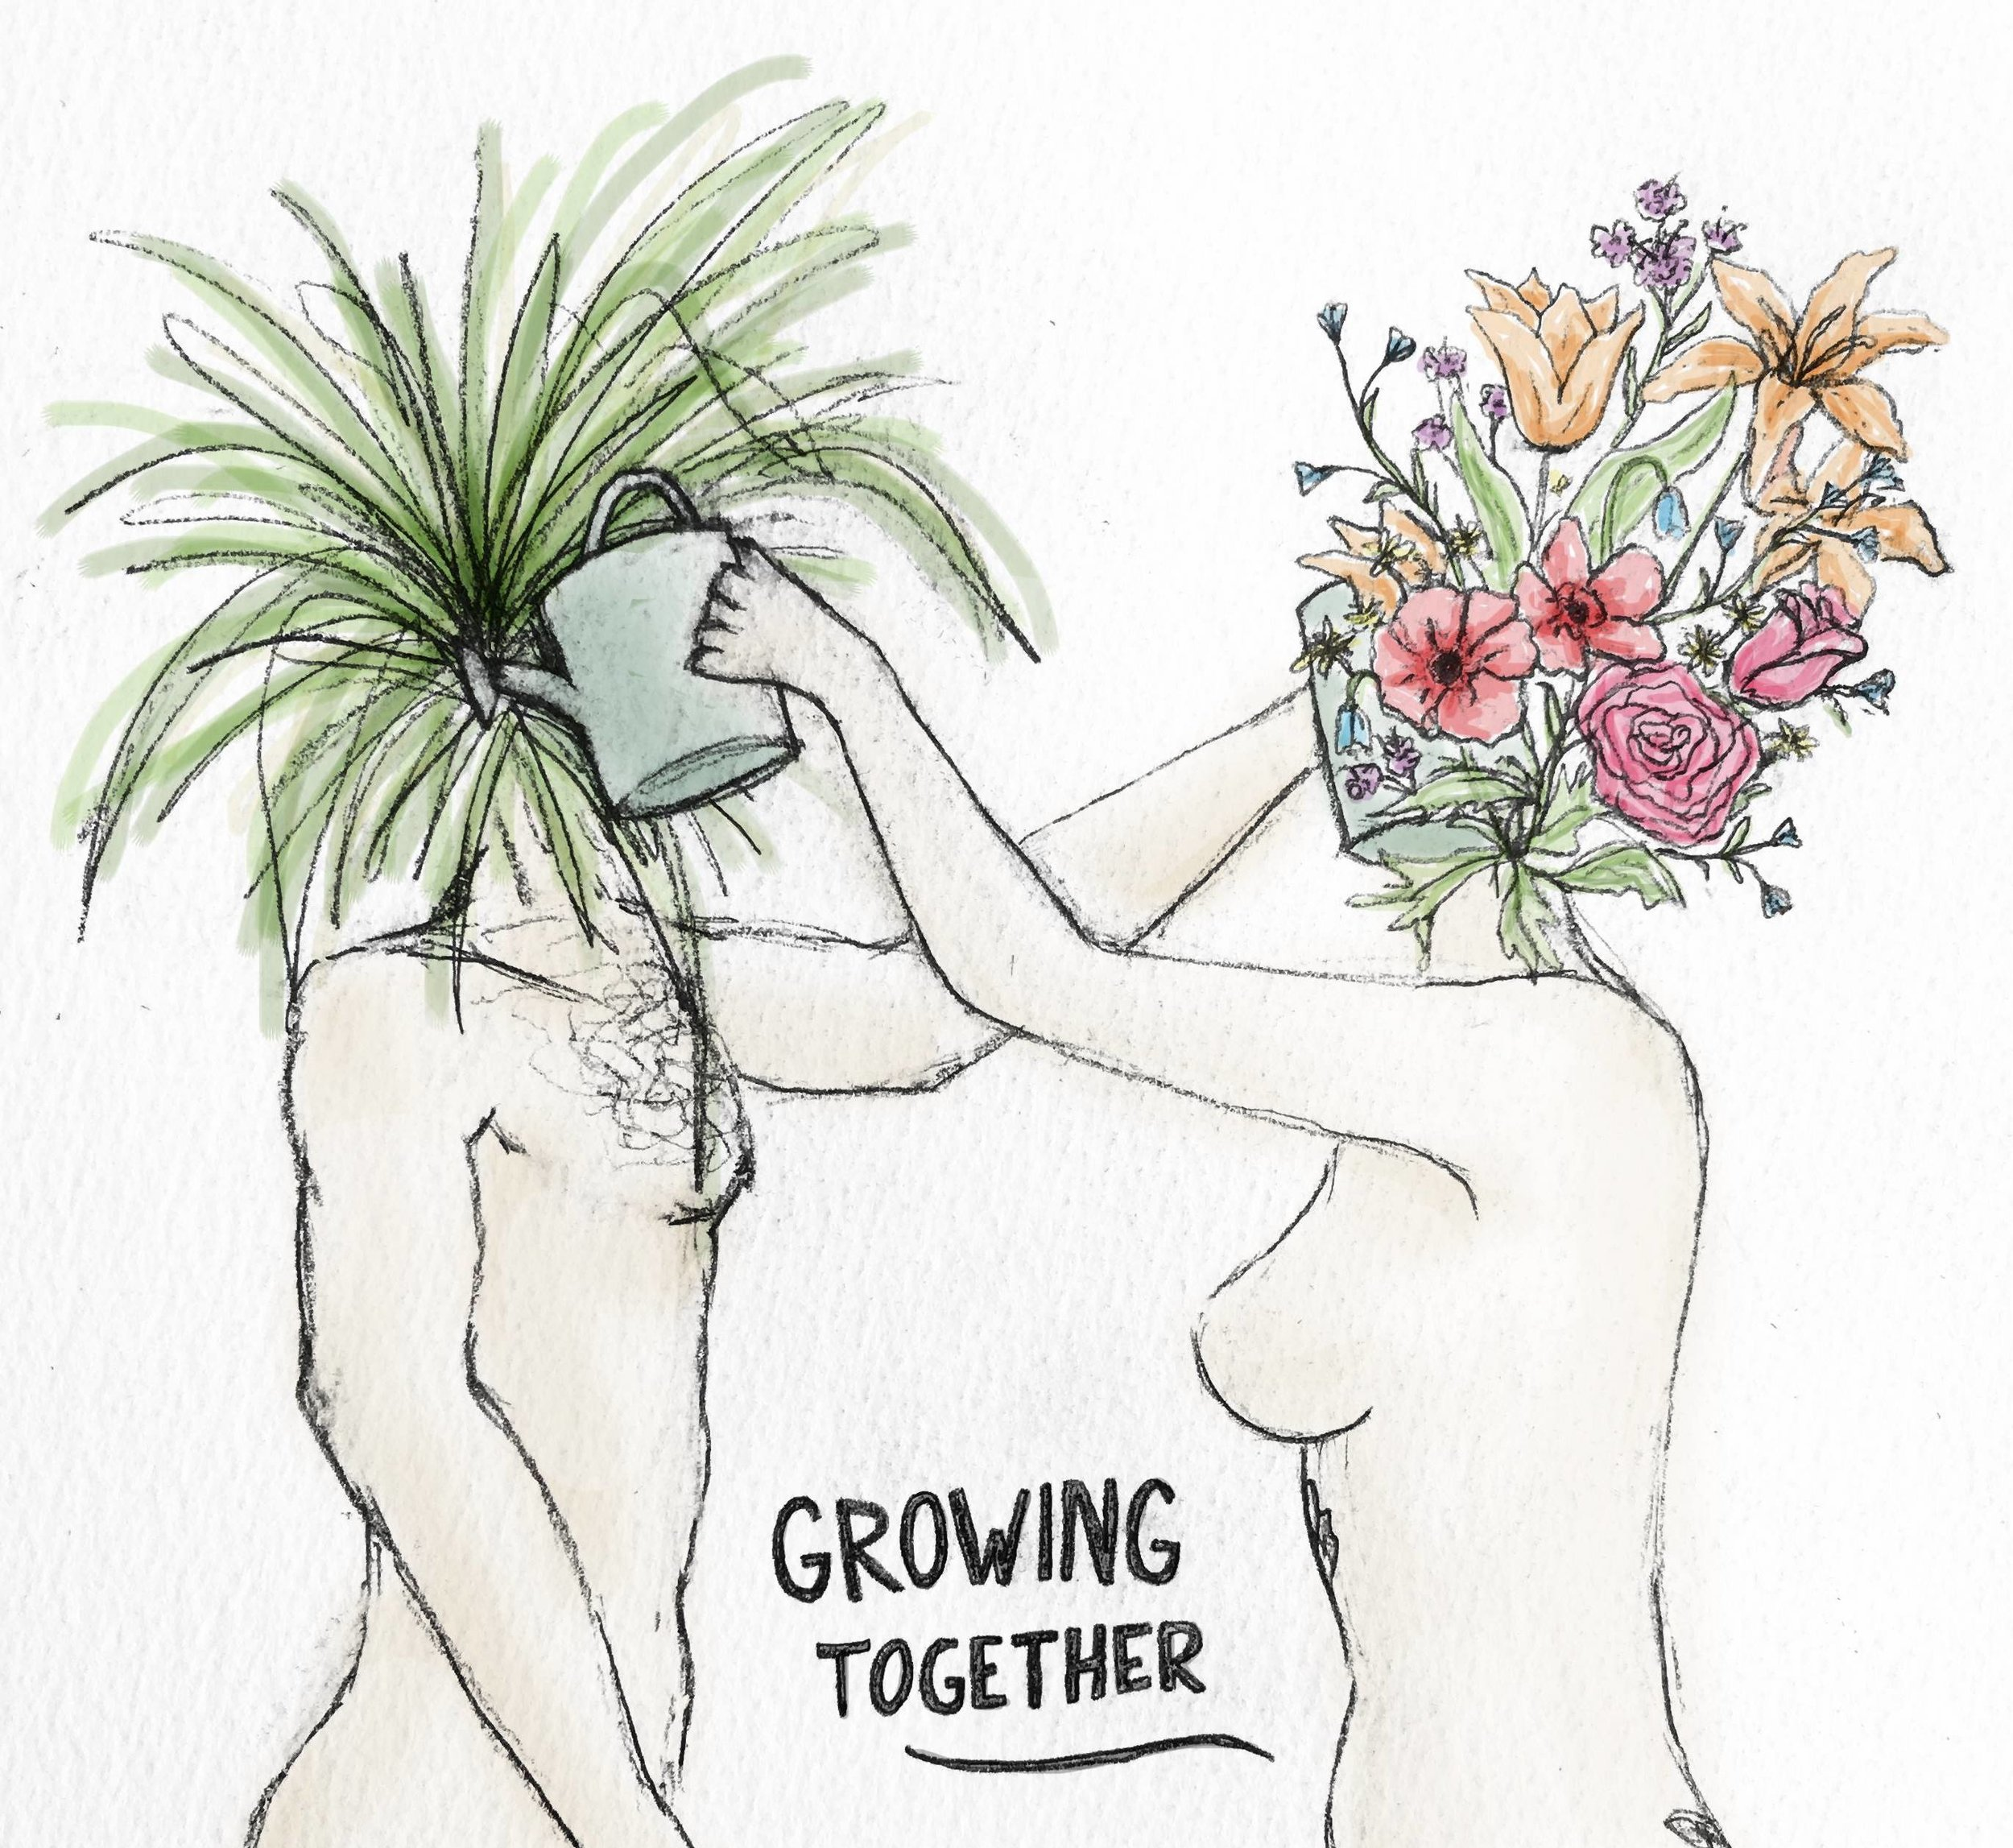 Grow Together - Develop and share the only habit you'll ever need. Get started in 15 minutes.